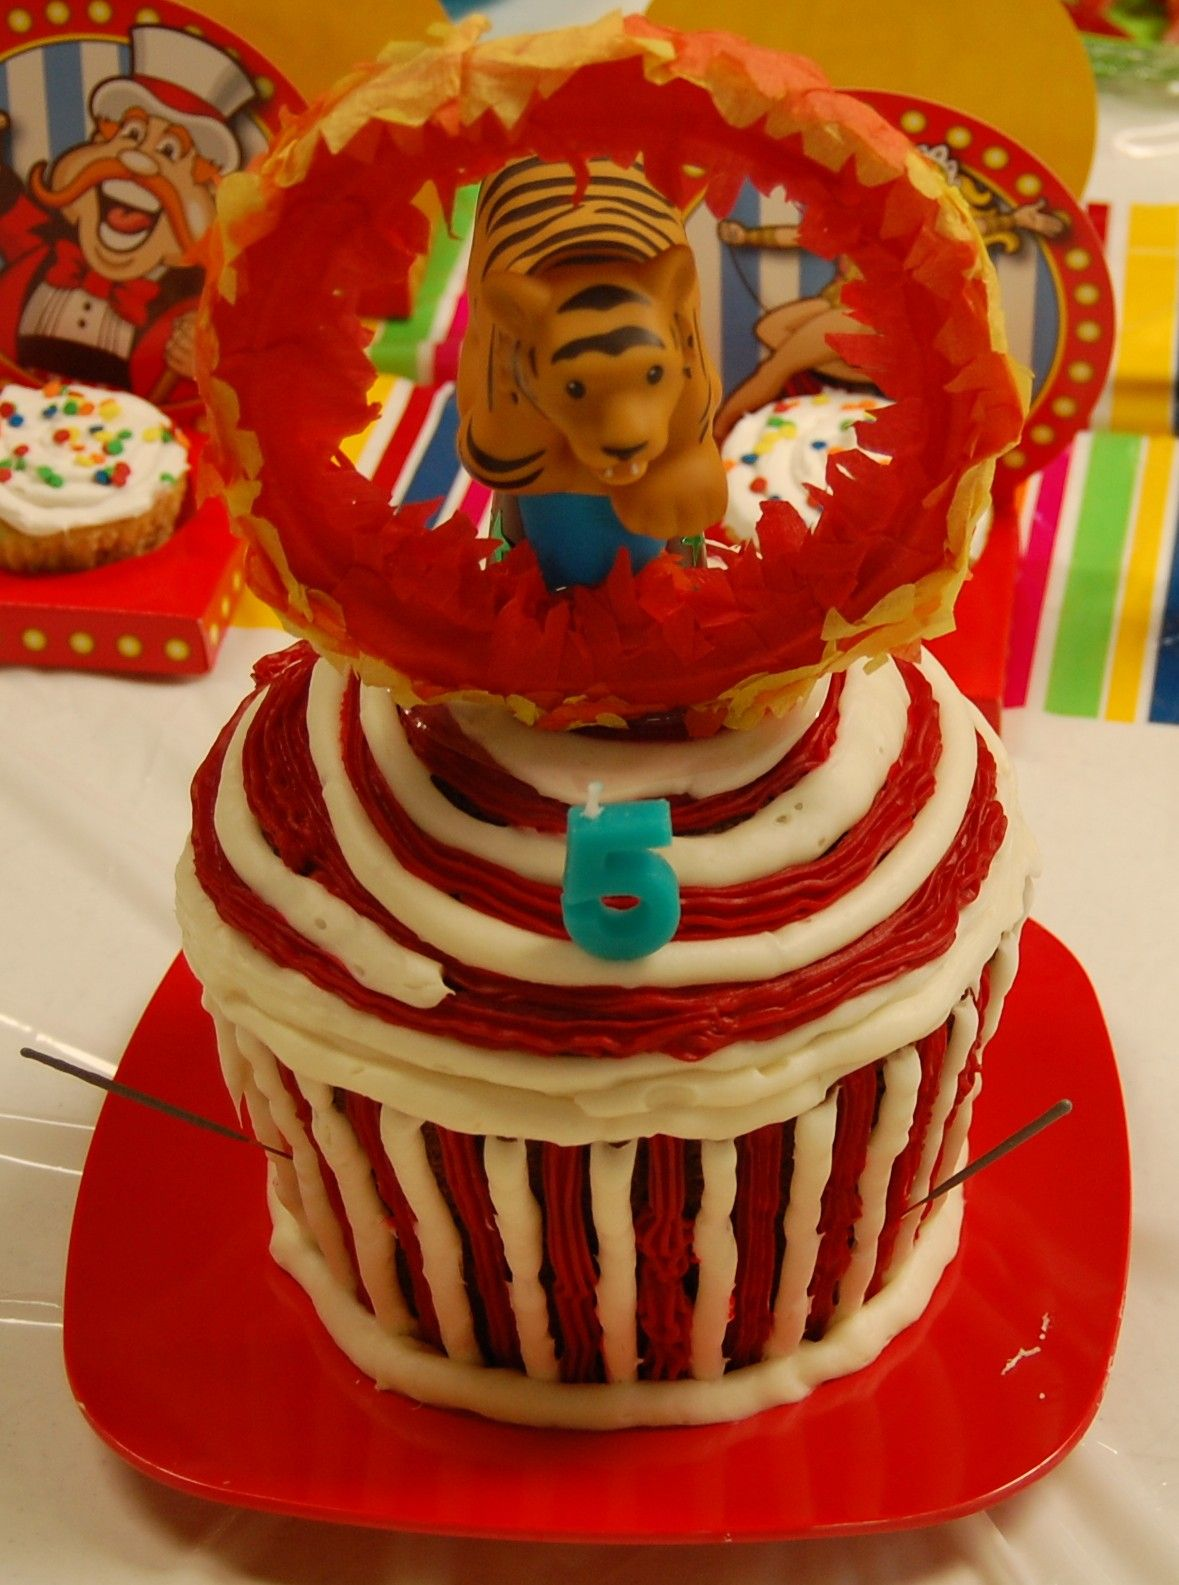 Circus Party Ring Of Fire Cake Iced A Giant Cupcake With Red And